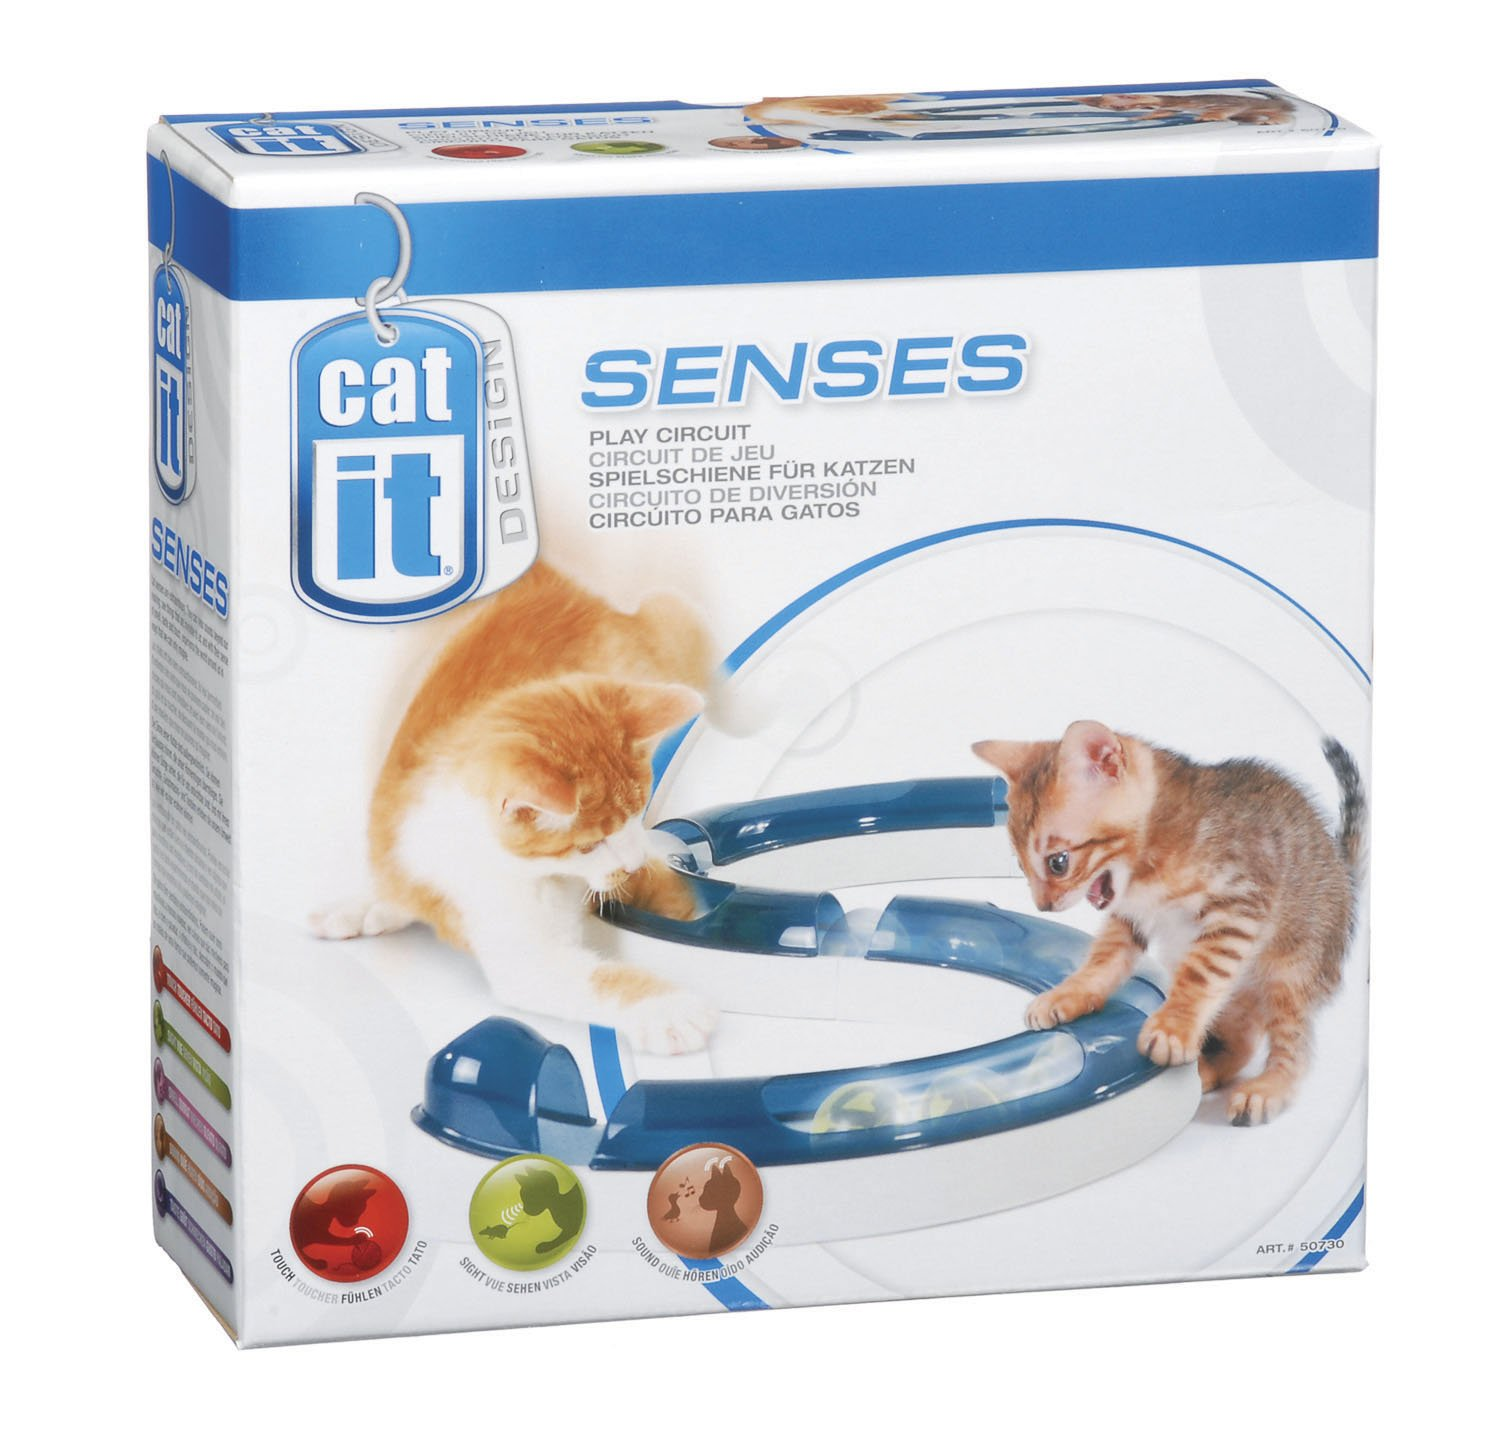 Bargain! CatIt Senses Play Circuit at Amazon